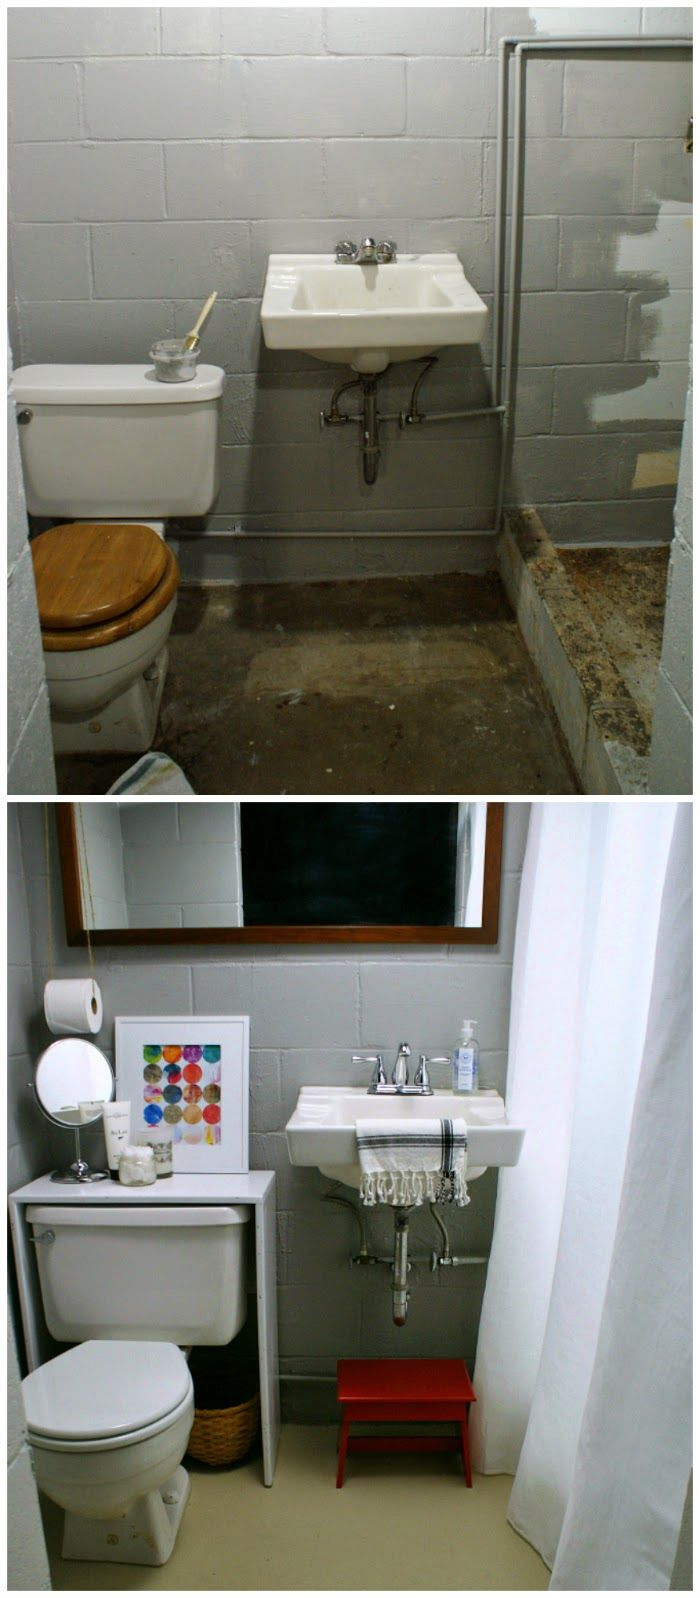 charming Unfinished Basement Bathroom Ideas Part - 19: before and after, basement bathroom makeover #smallbathroom #bathroomideas # basement | DIY Ideas | Pinterest | Basement Bathroom, Basement and Bathroom